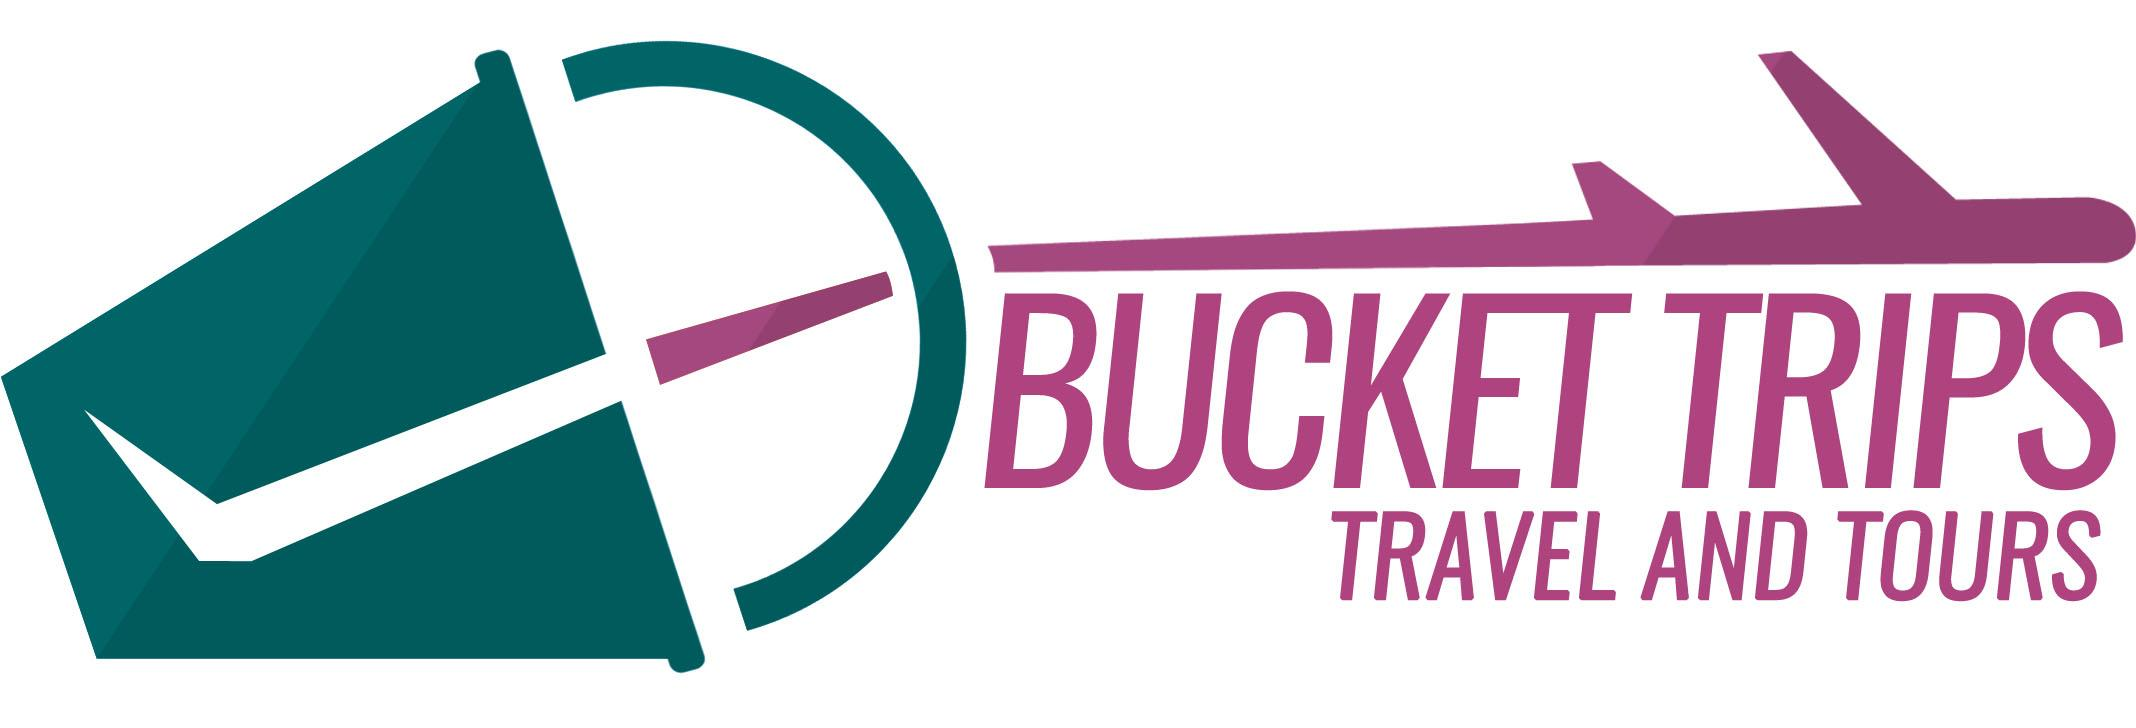 Bucket Trips Travel and Tours